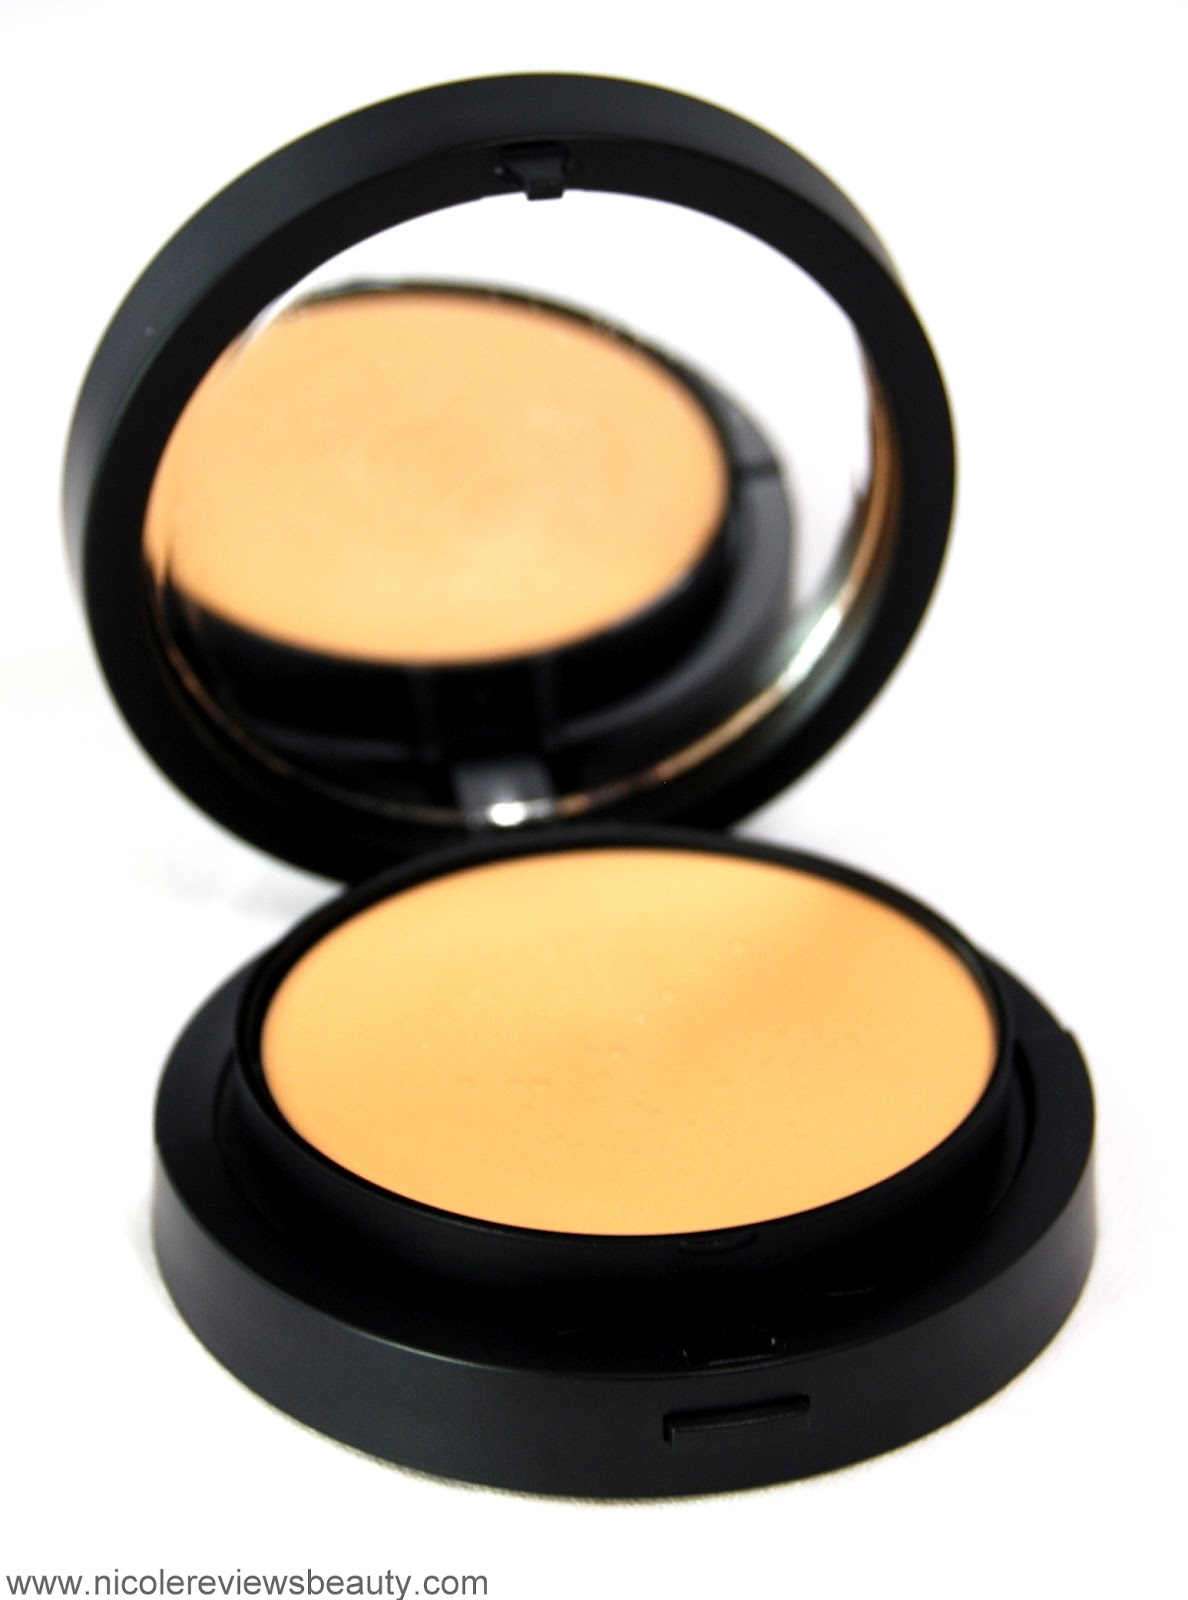 Nicole Reviews Beauty: Youngblood Mineral Radiance Creme Powder Foundation in Barely Beige ...